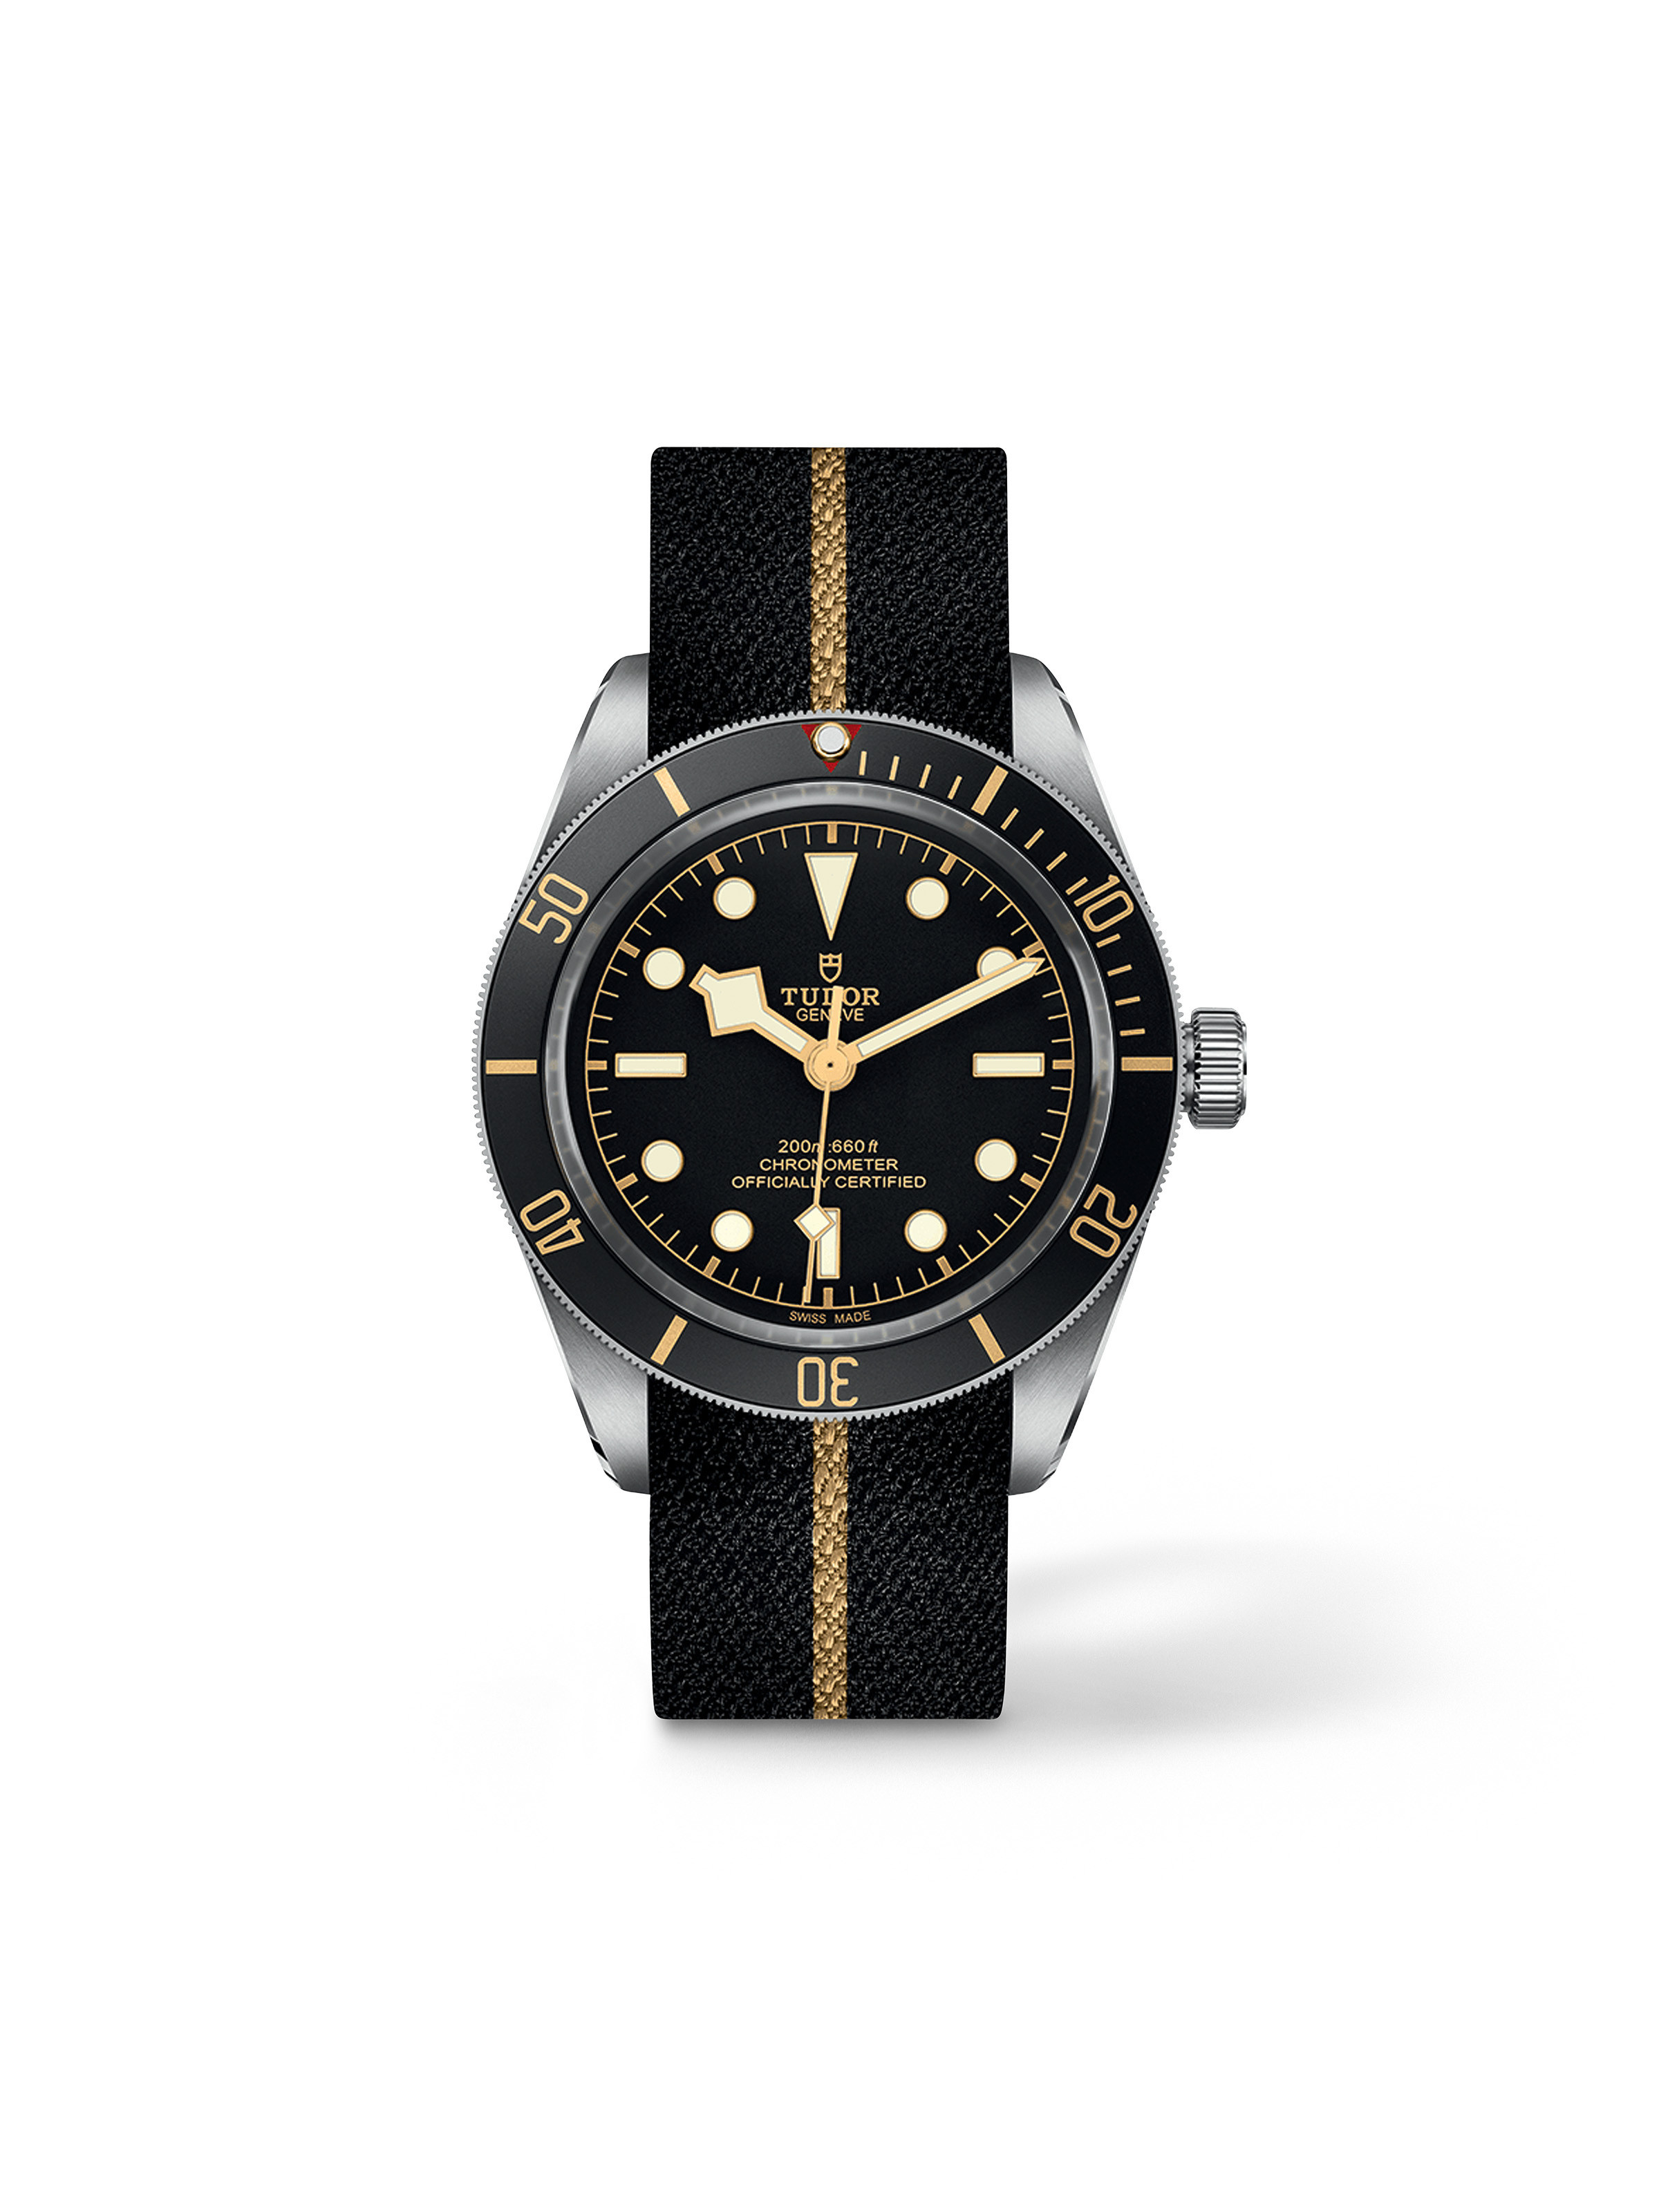 Black Bay Fifty-Eight